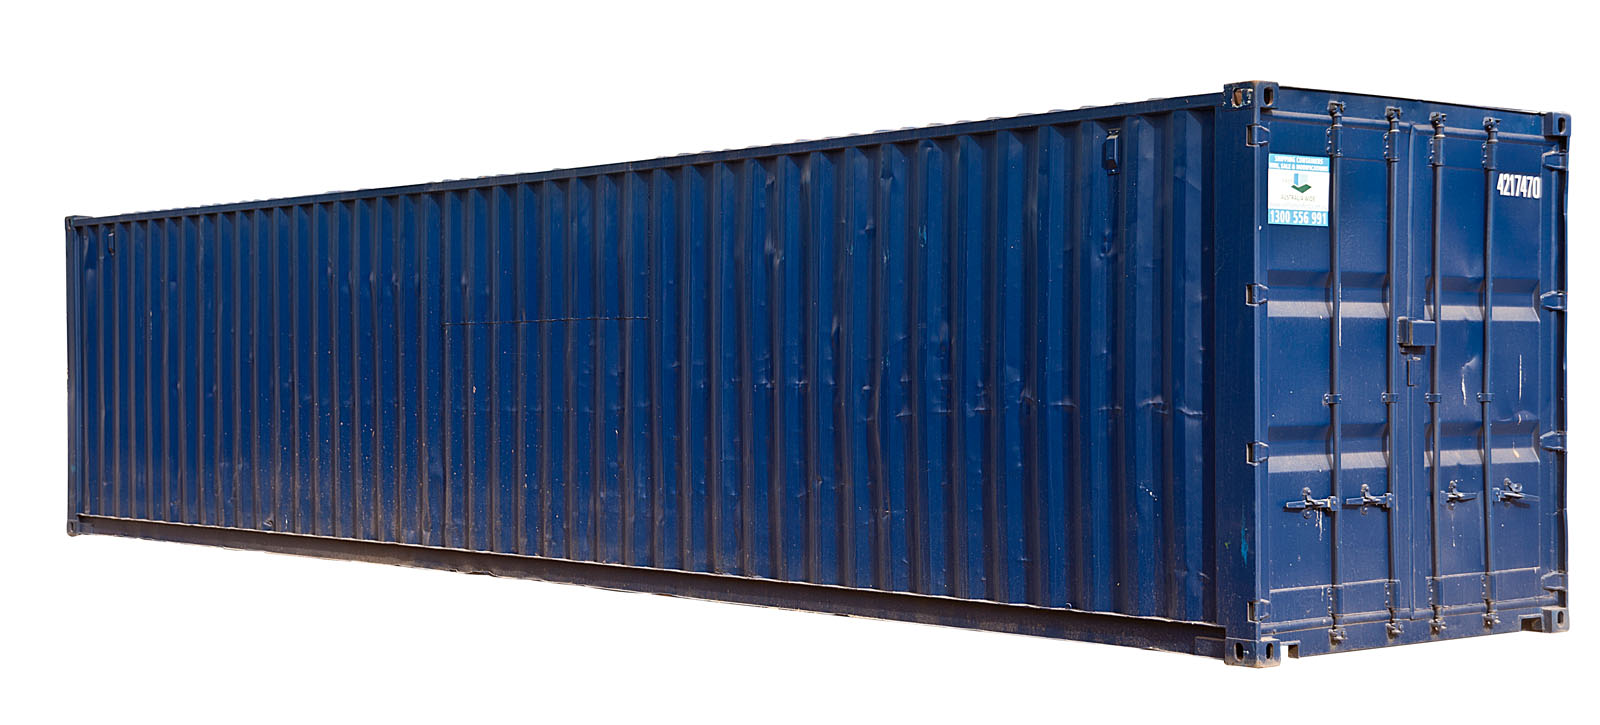 Used Shipping Containers as Storage 1600 x 725